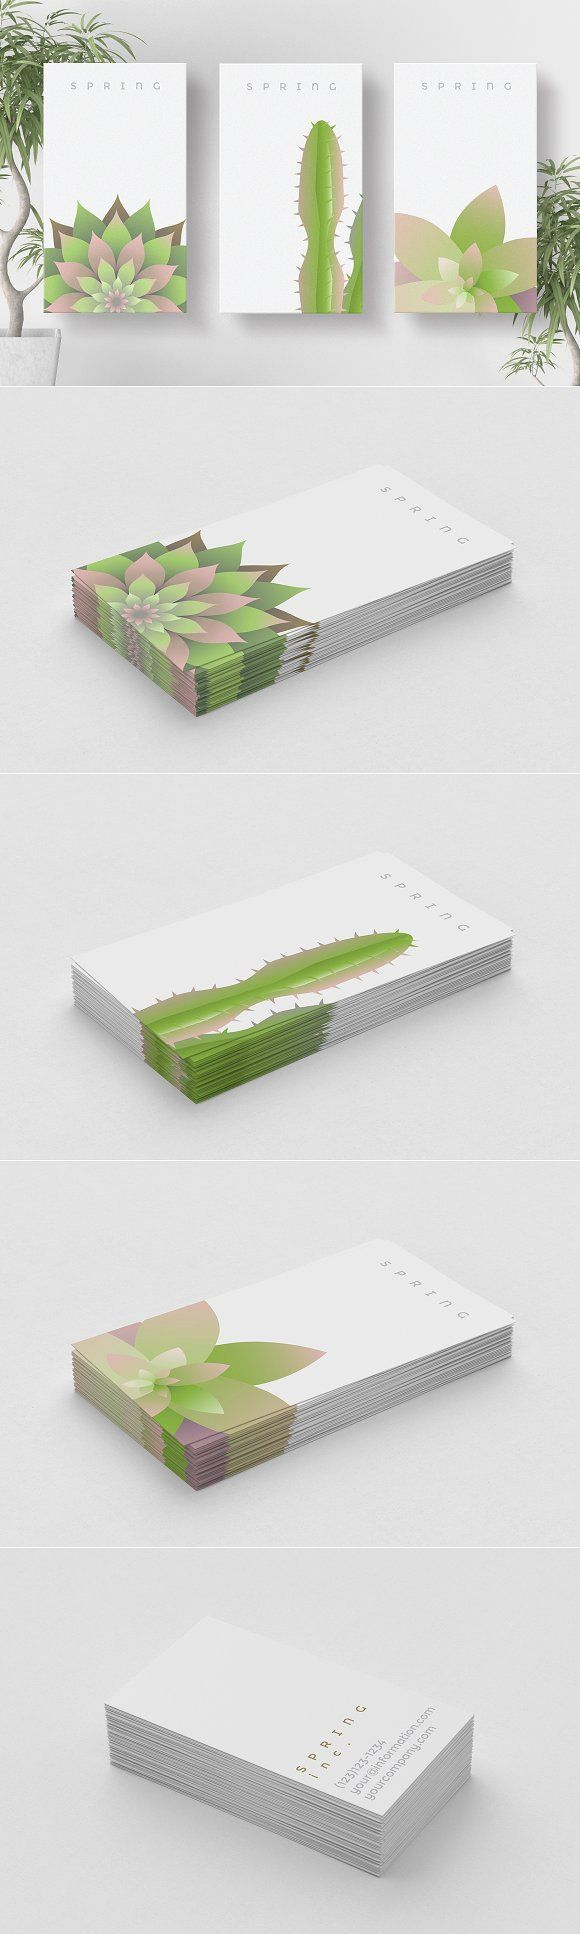 Best 25 free business card maker ideas on pinterest free spring business card templates by polar vectors on creativemarket magicingreecefo Images